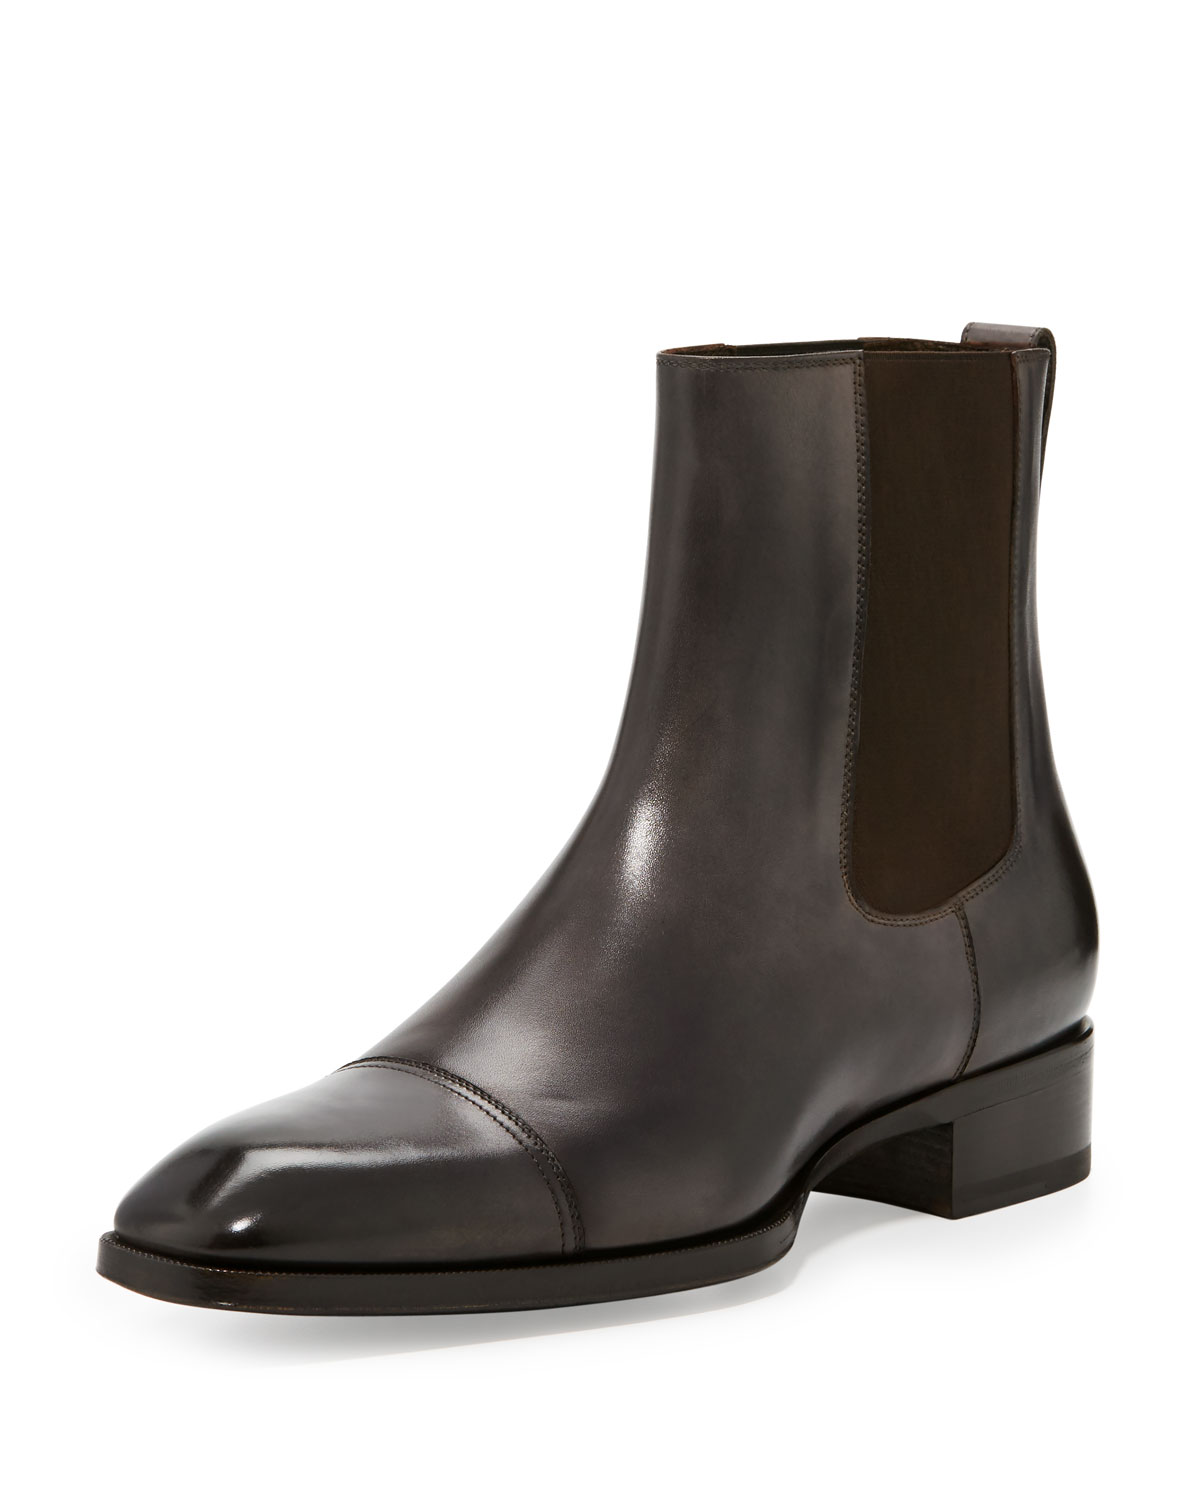 TOM FORD Gianni Leather Chelsea Boots